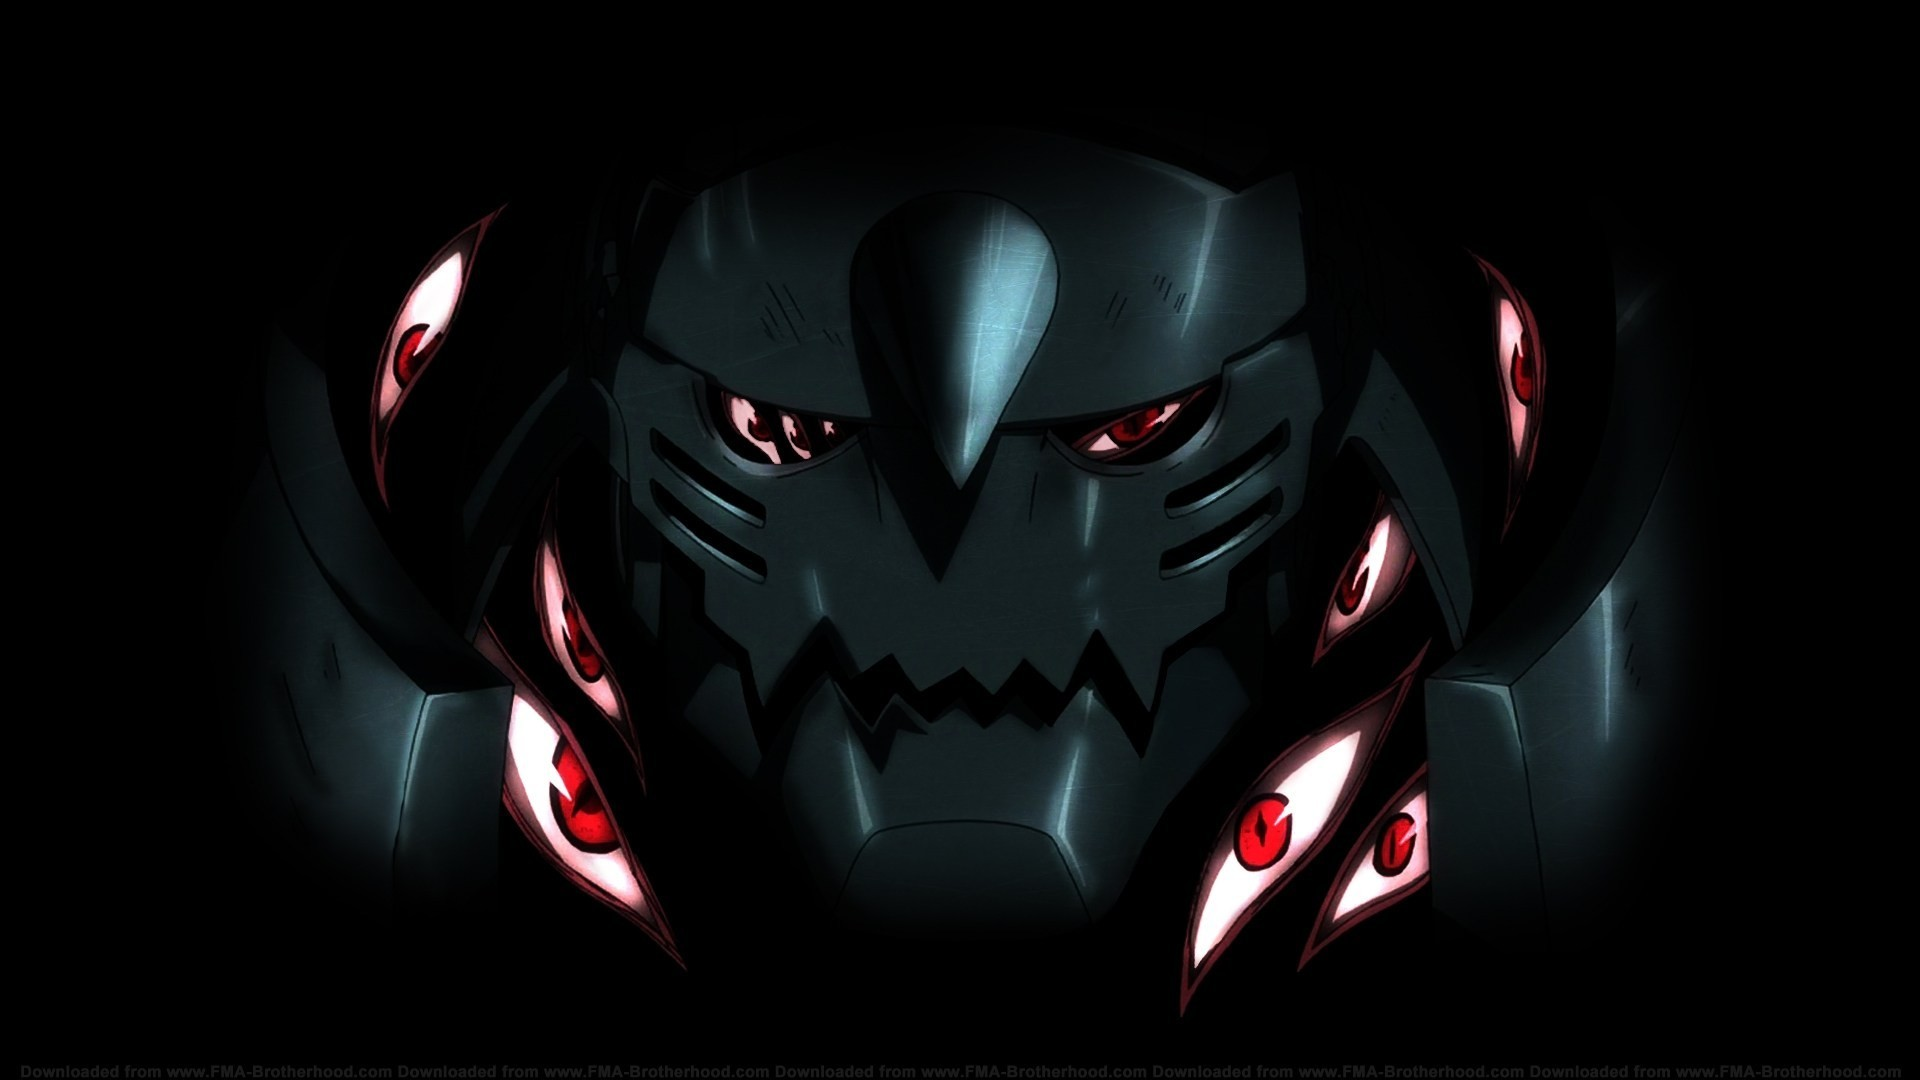 1920x1080 Fullmetal Alchemist Alphonse Elric 1080p HD Wallpaper Background